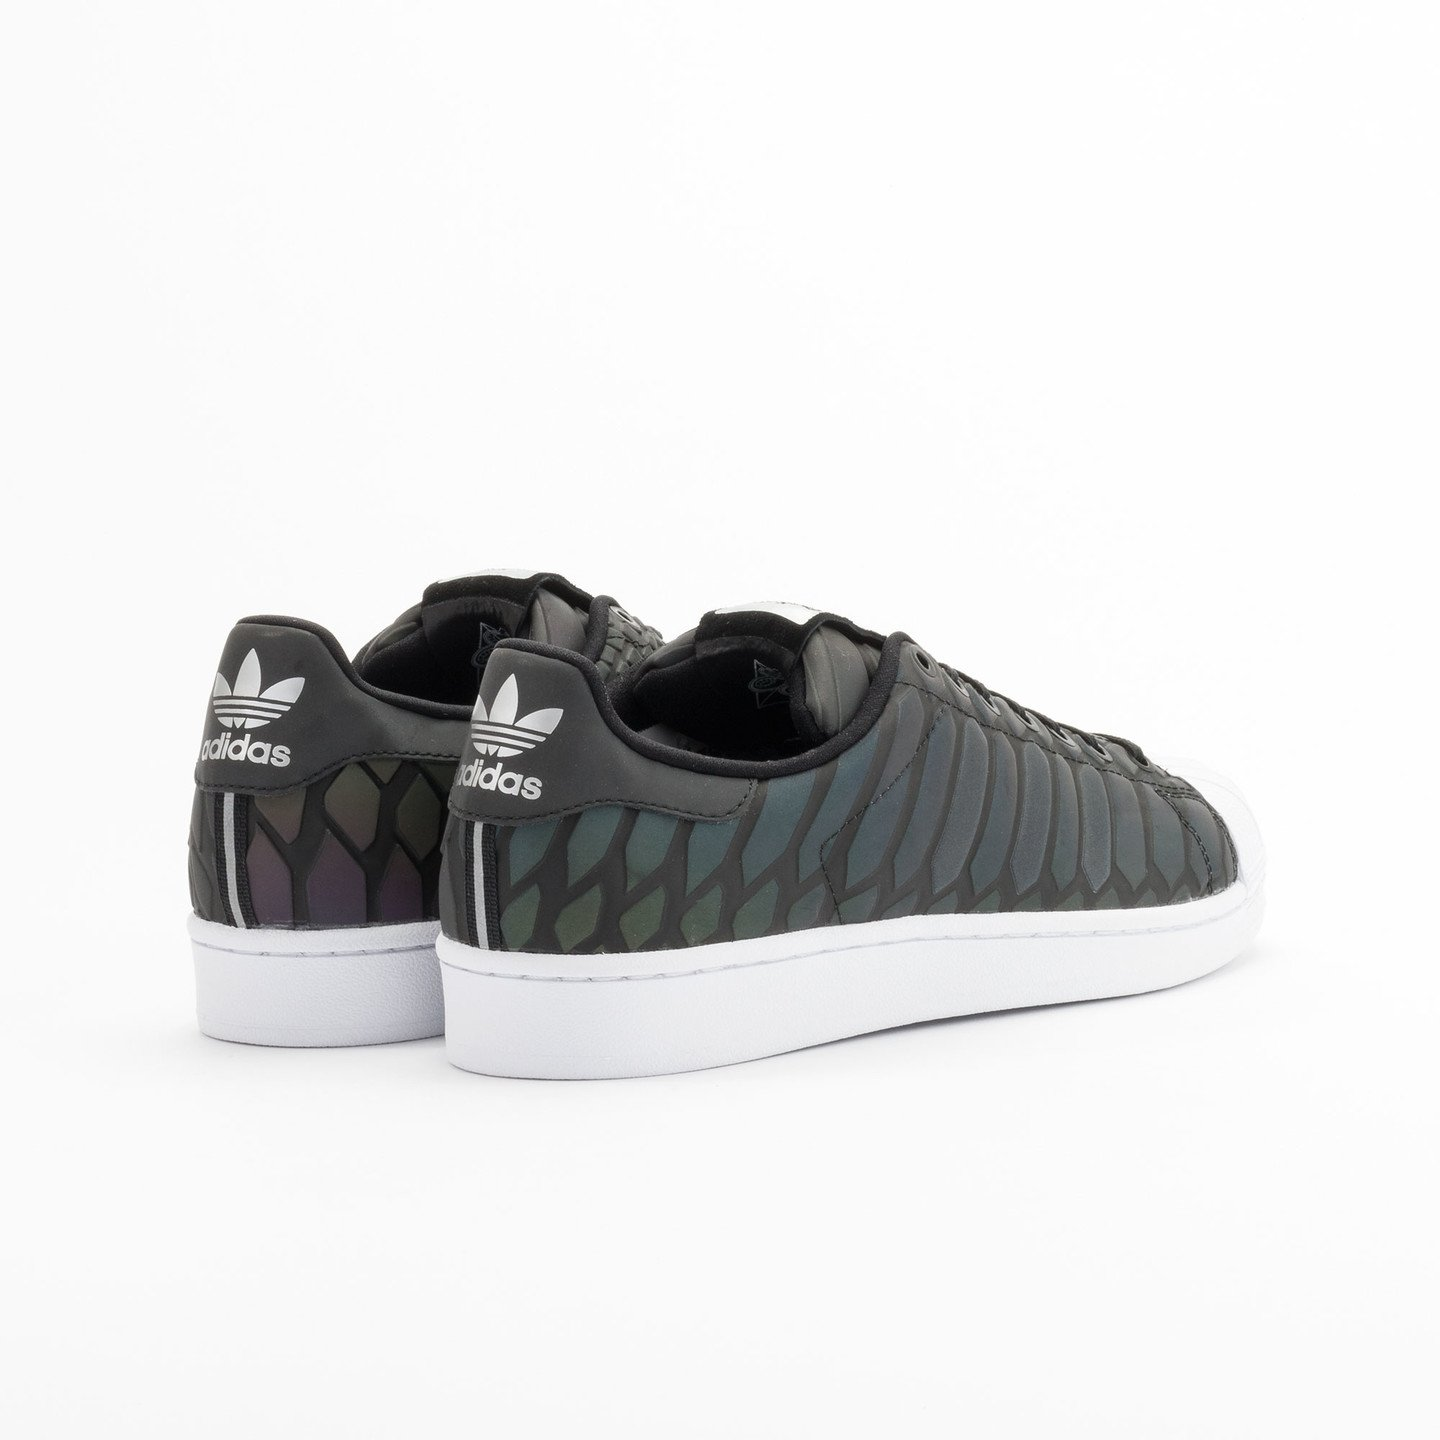 Adidas Superstar Xeno Pack Cblack / Supcol / Ftwwht D69366-42